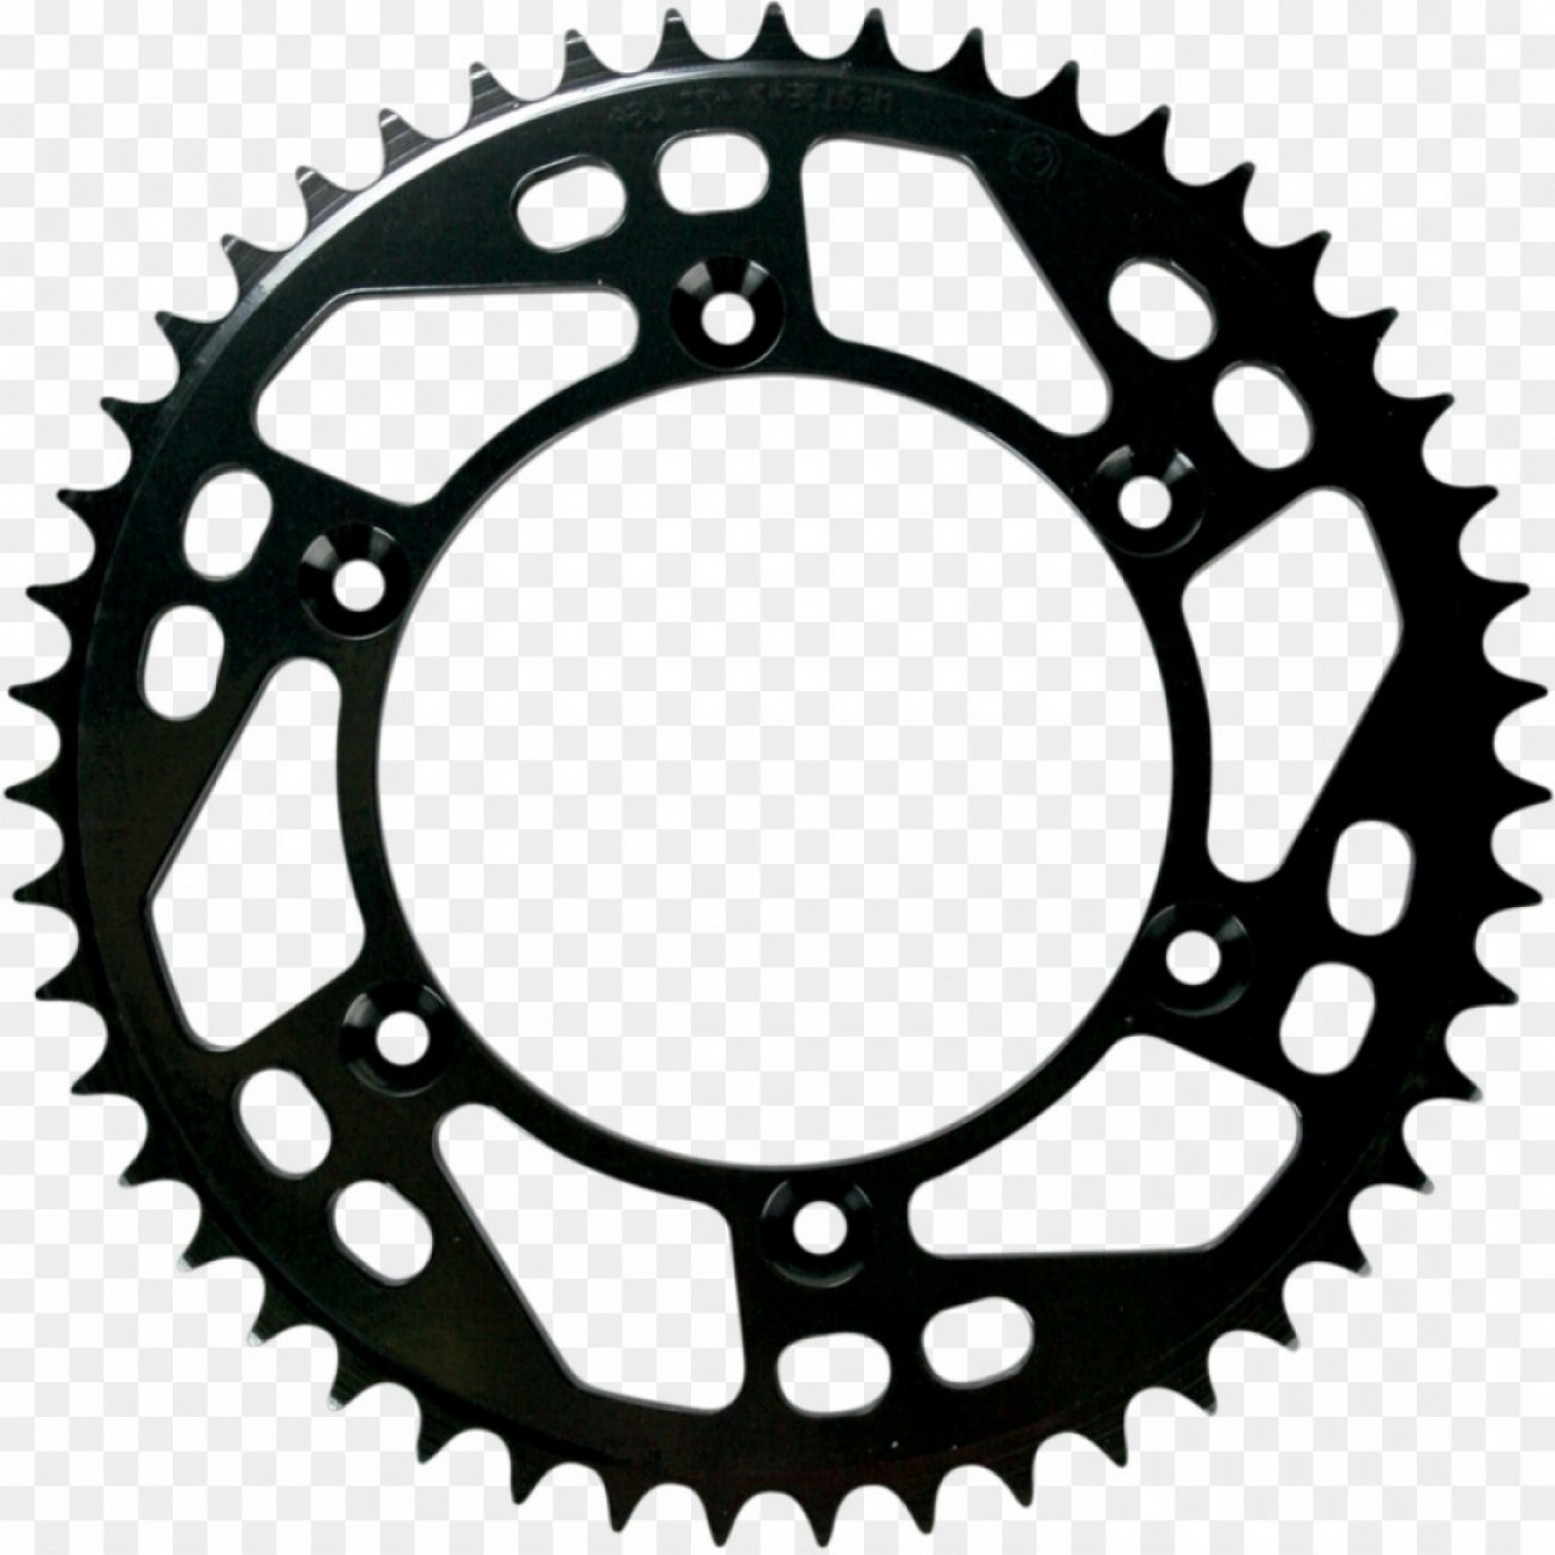 Bicycle Crank Vector Of Artwork: Png Roller Chain Sprocket Bicycle Motorcycle Clip Art